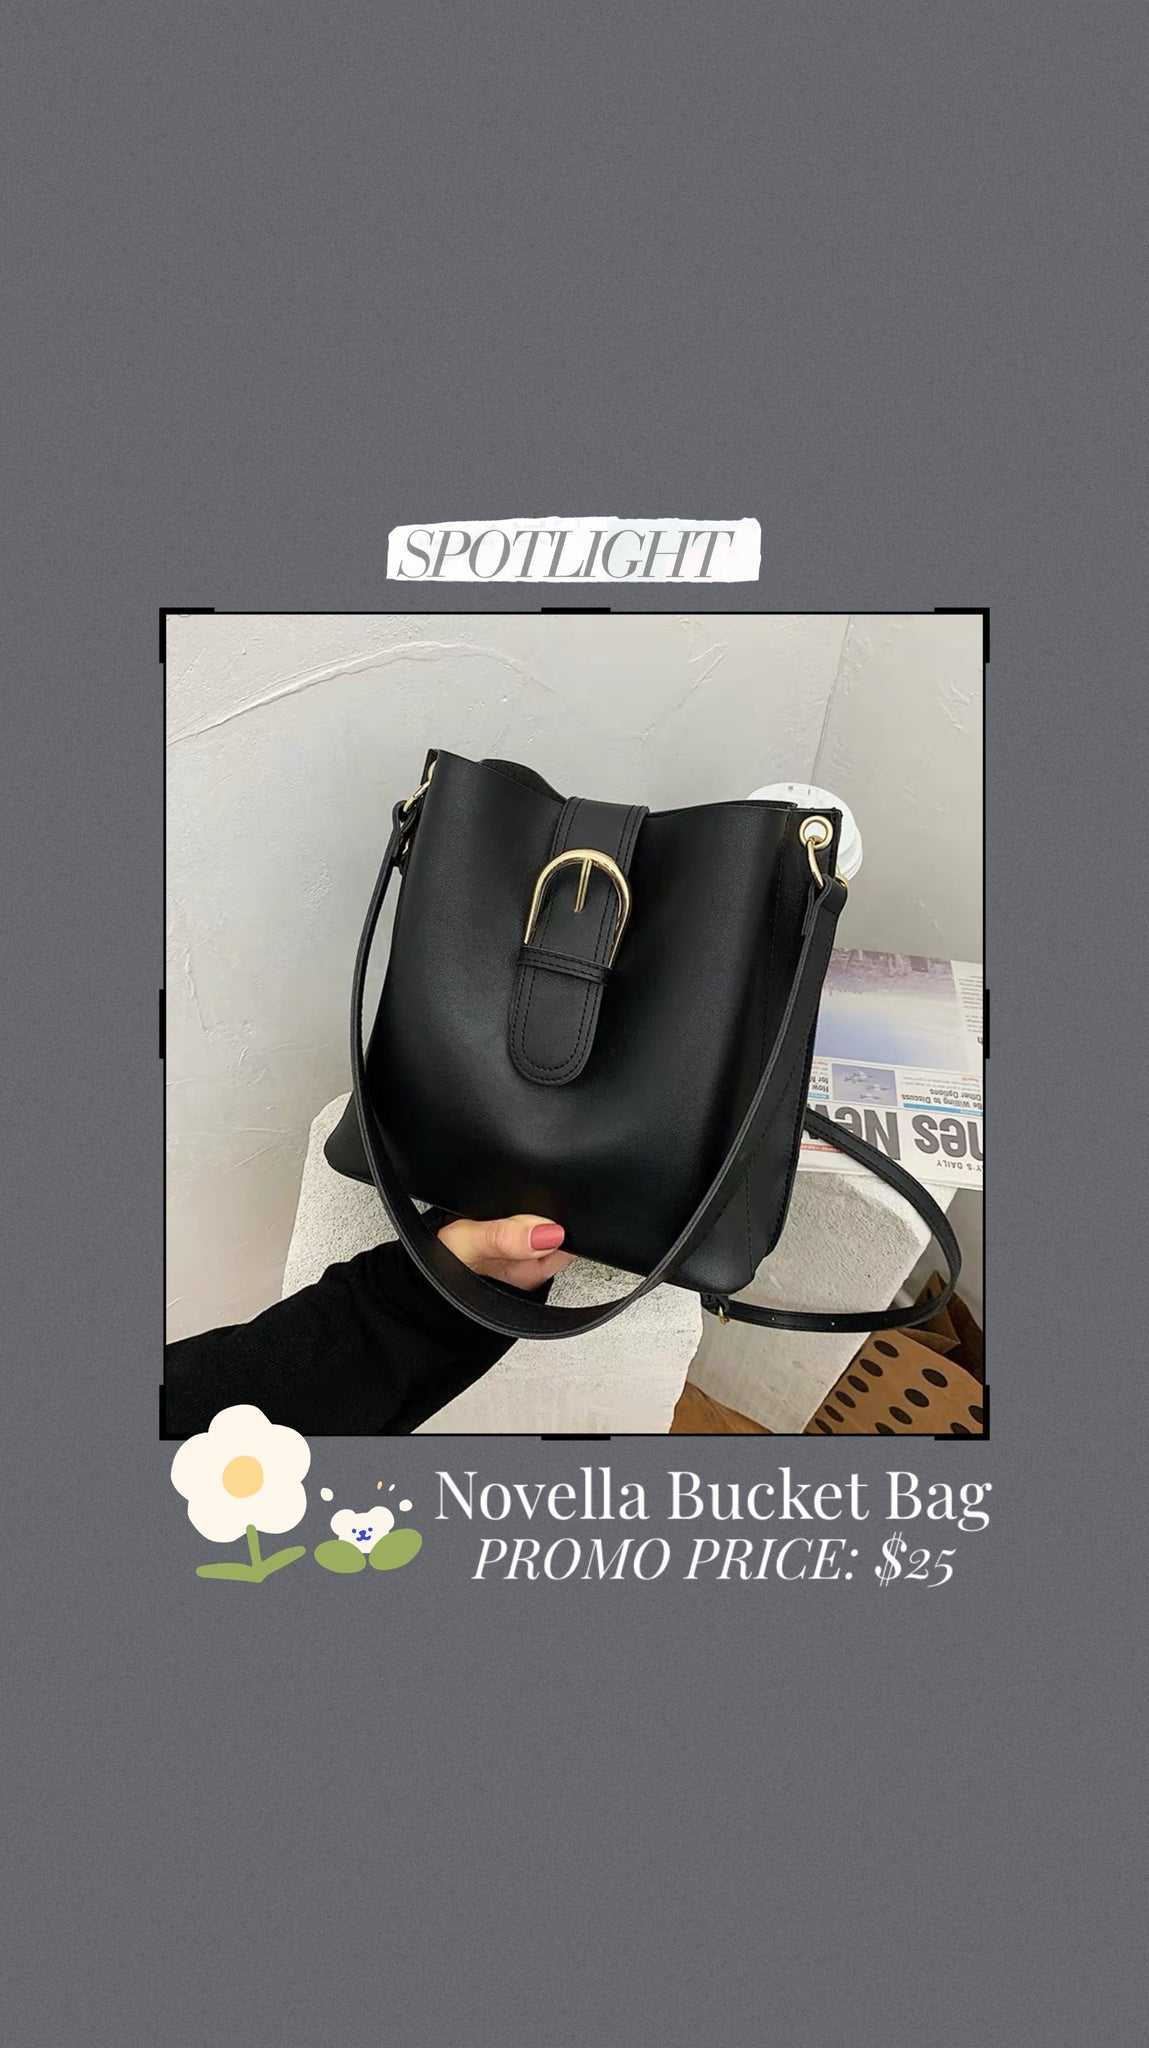 Novella Bucket Bag